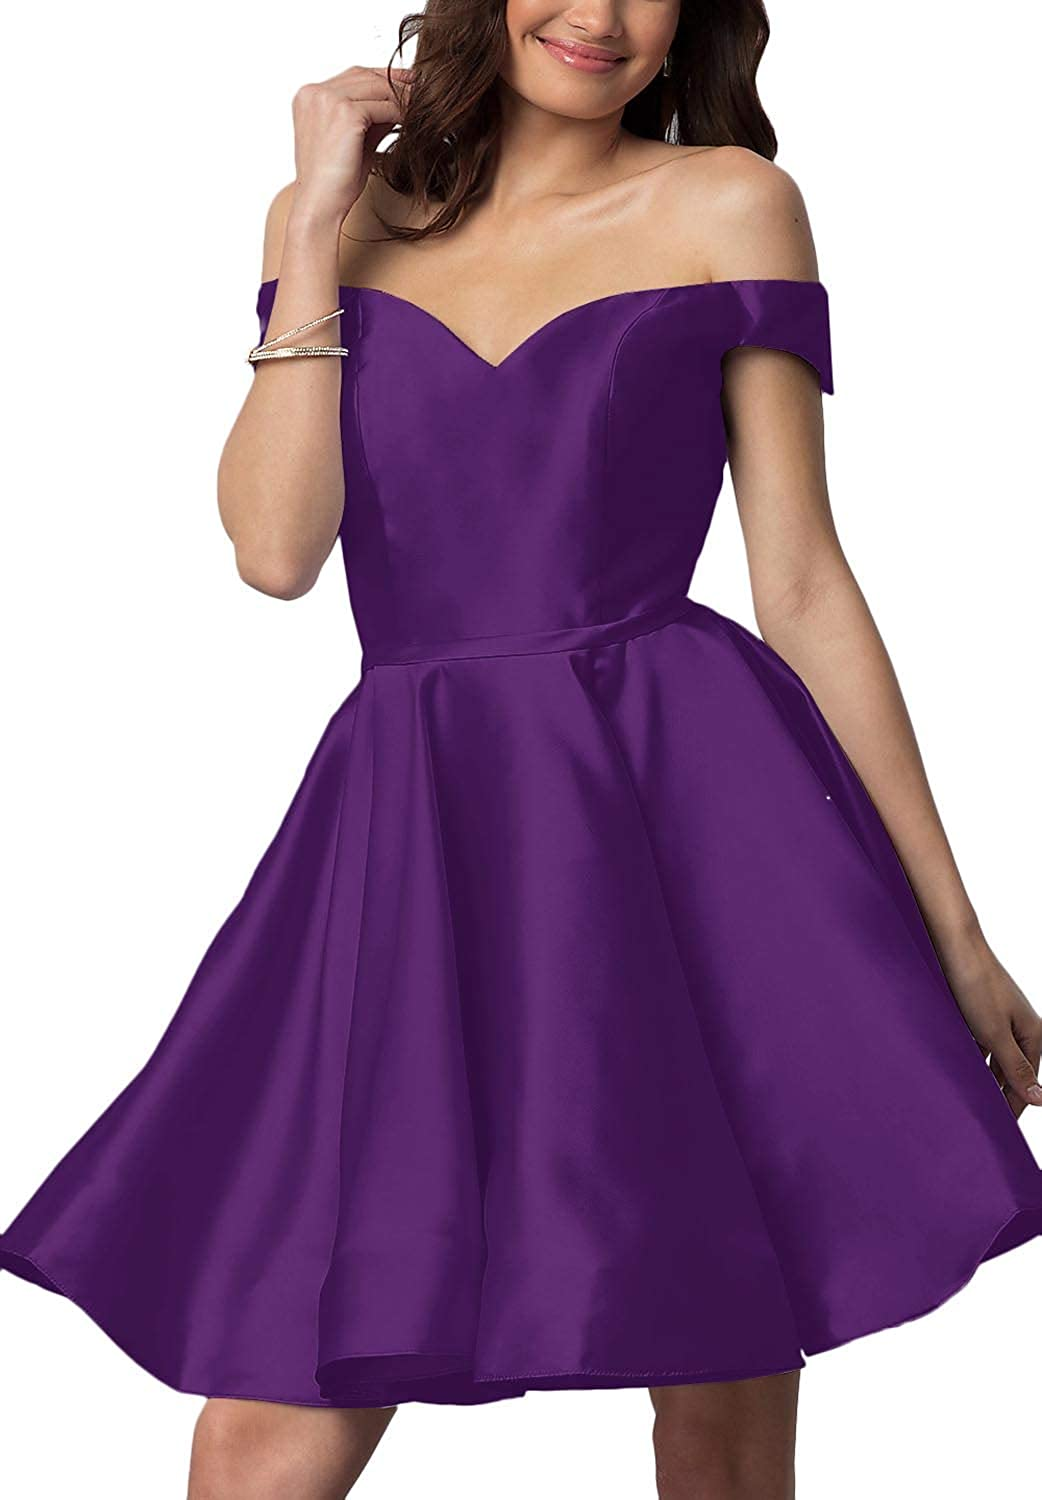 Dark Purple YnanLi Dress Short Off Shoulder Homecoming Dresses for Junior Cocktail Ball Gown with Pocket